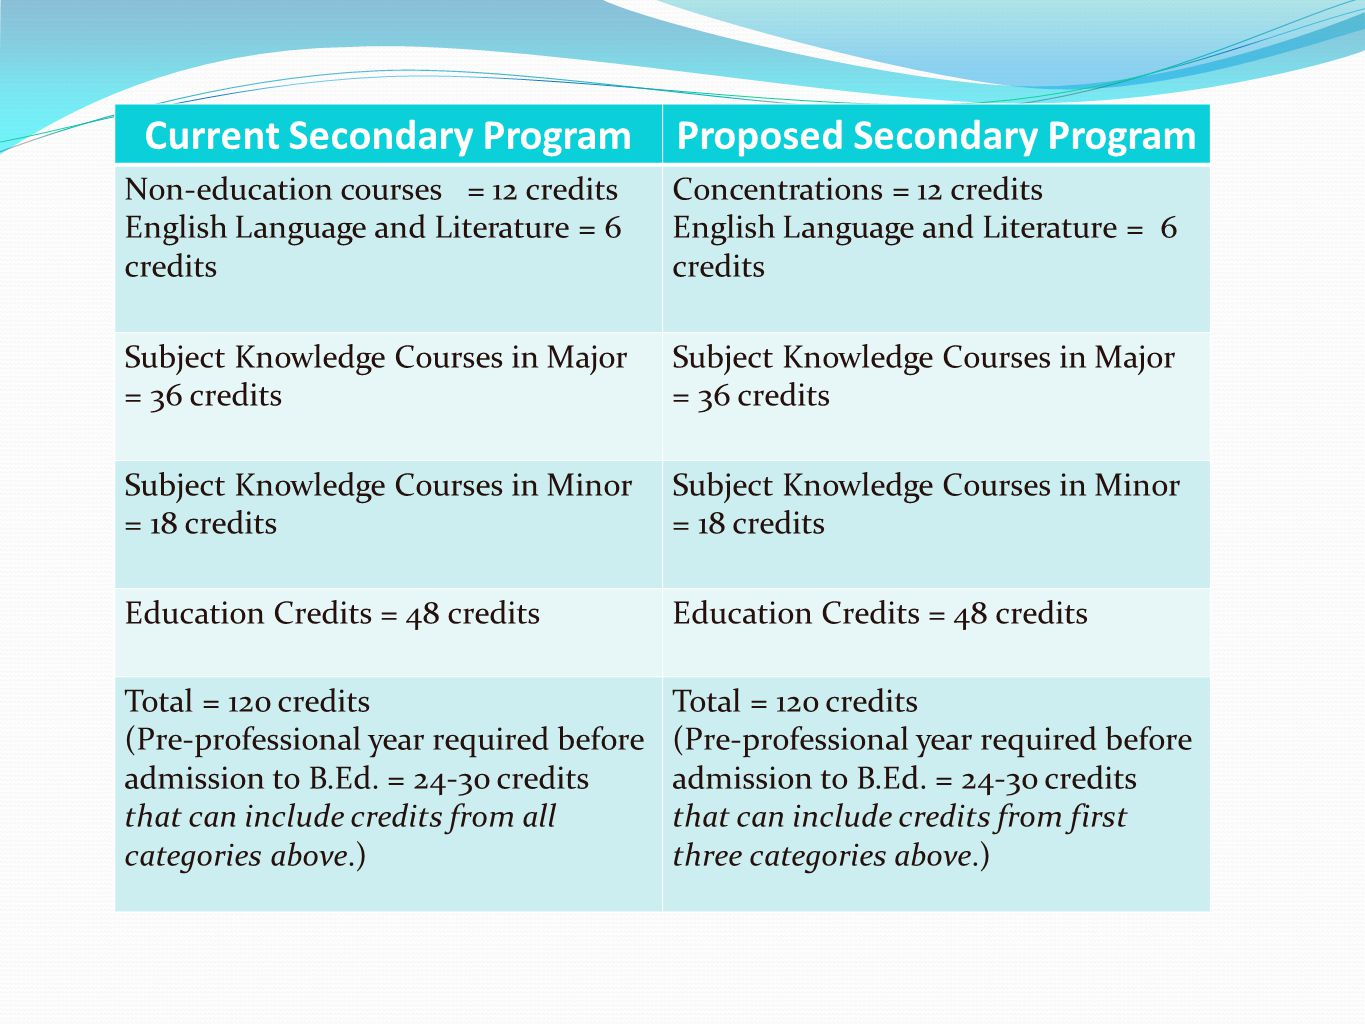 Current Secondary ProgramProposed Secondary Program Non-education courses = 12 credits English Language and Literature = 6 credits Concentrations = 12 credits English Language and Literature = 6 credits Subject Knowledge Courses in Major = 36 credits Subject Knowledge Courses in Major = 36 credits Subject Knowledge Courses in Minor = 18 credits Education Credits = 48 credits Total = 120 credits (Pre-professional year required before admission to B.Ed.